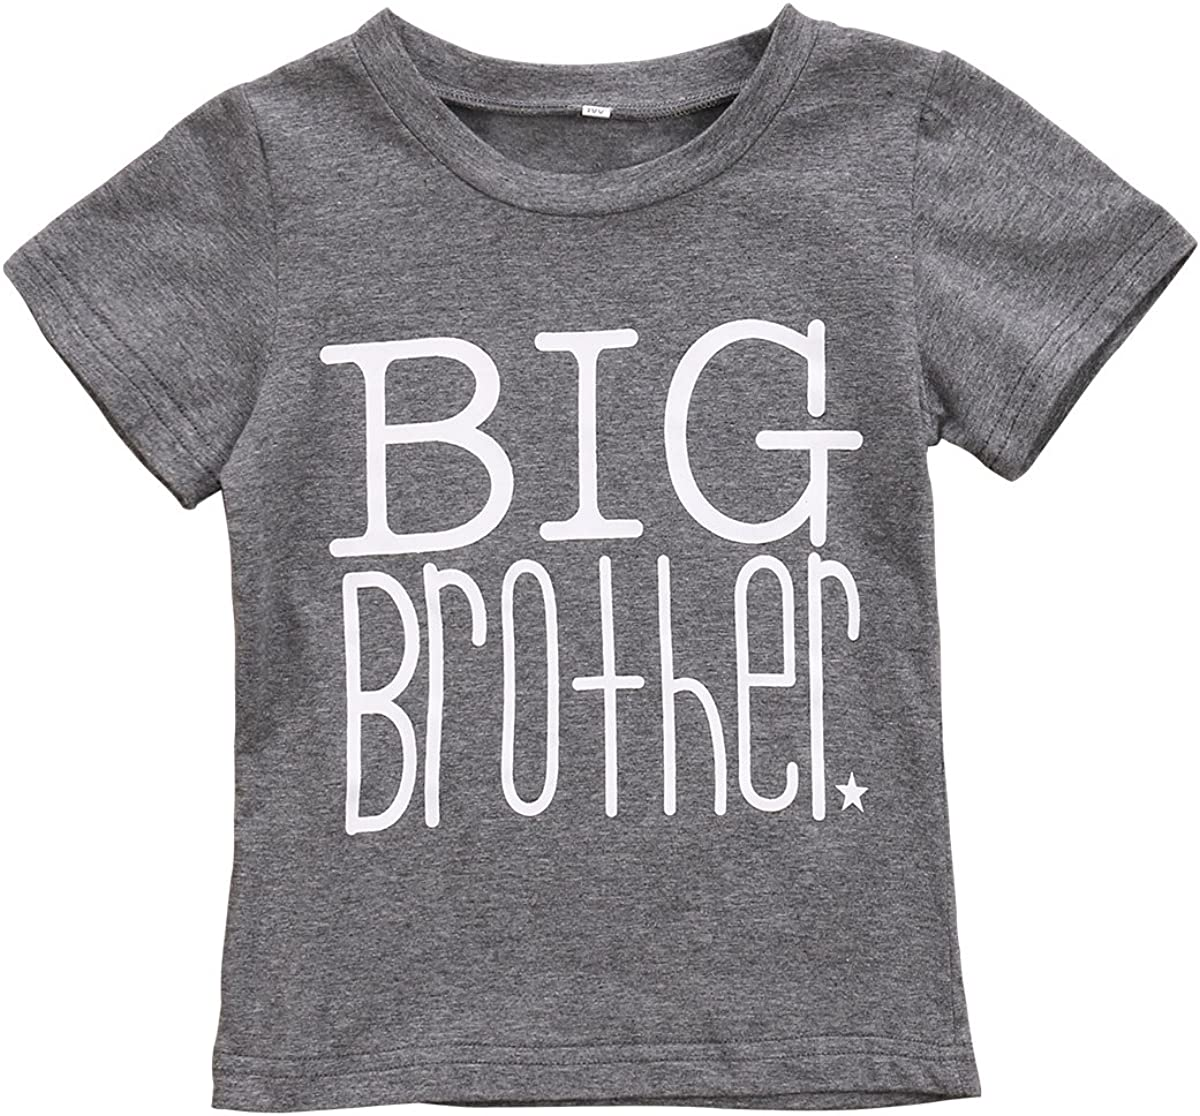 Toddler Baby Boys Cartoon Big Brother Print Summer Tops T Shirts for 1-6 Years Old